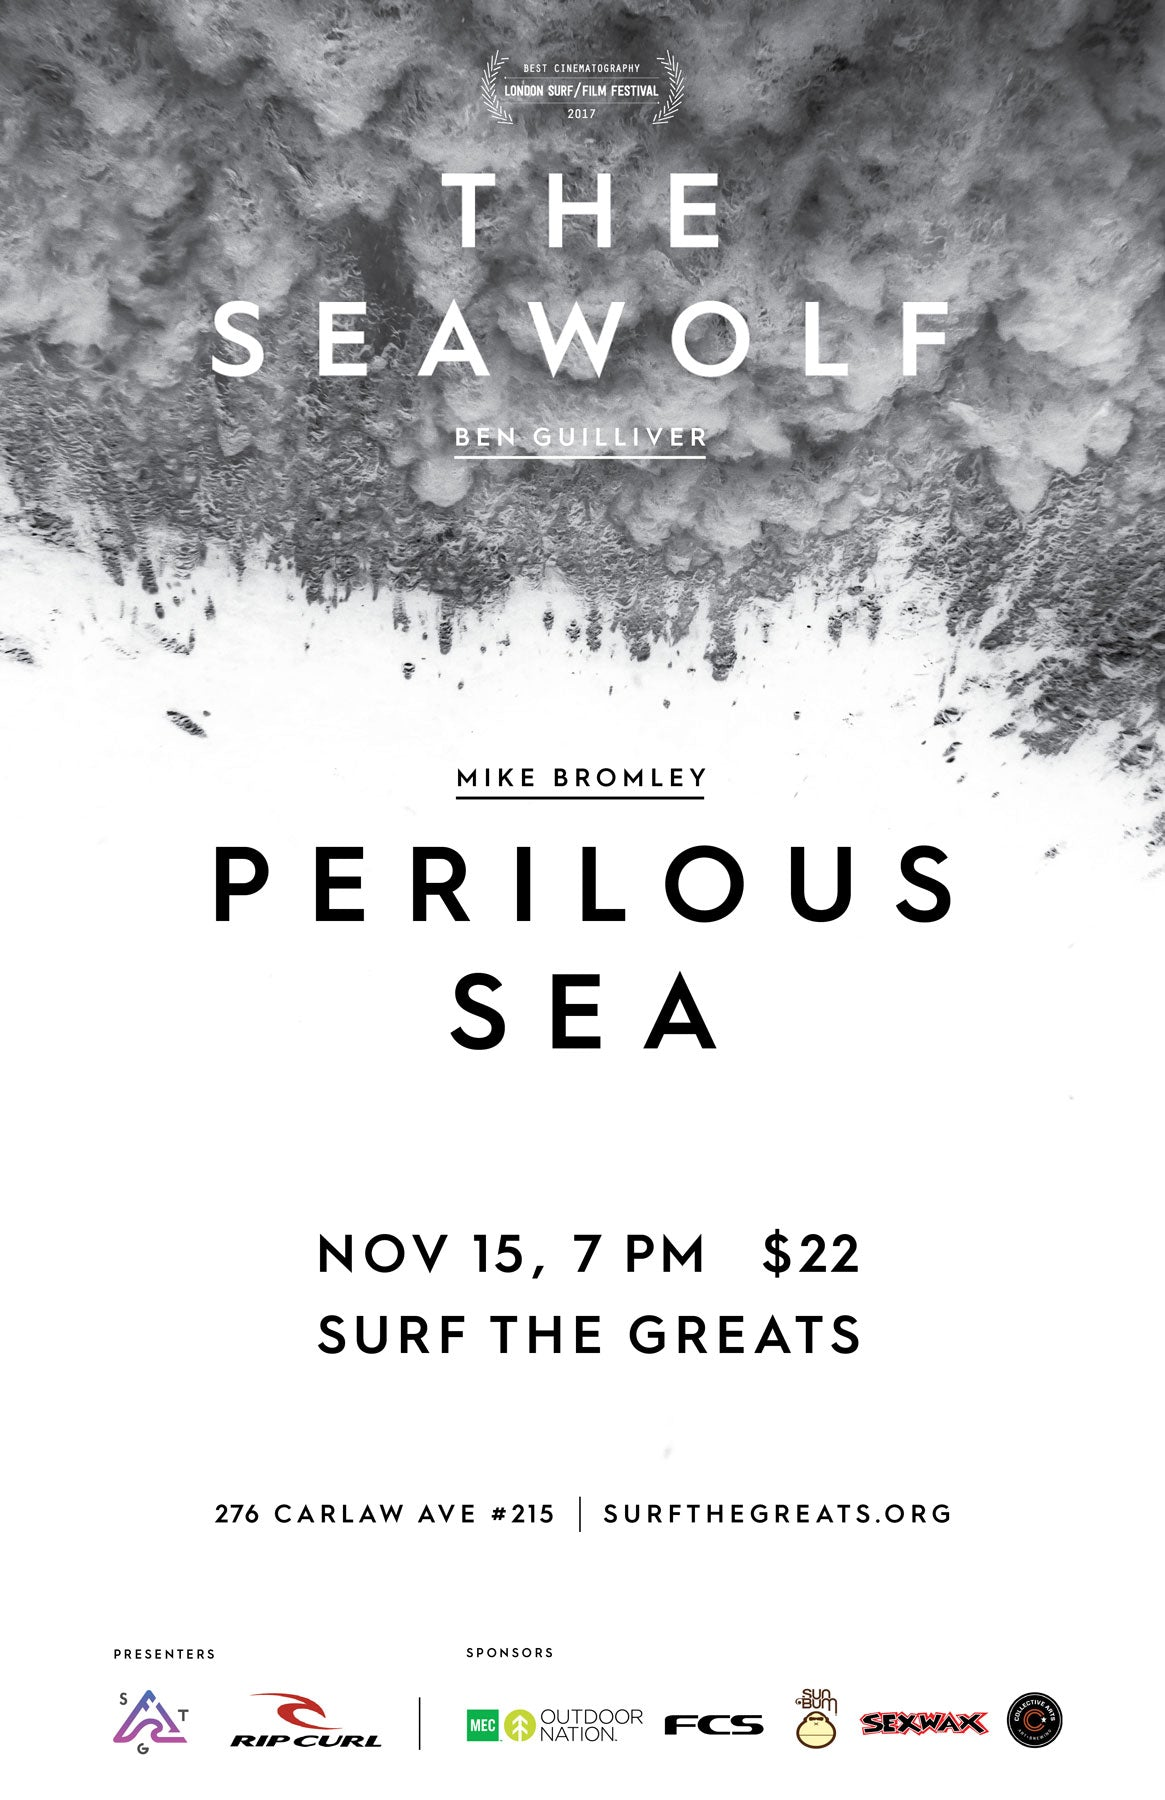 The Seawolf Perilous Sea Canadian Surf Film Screening